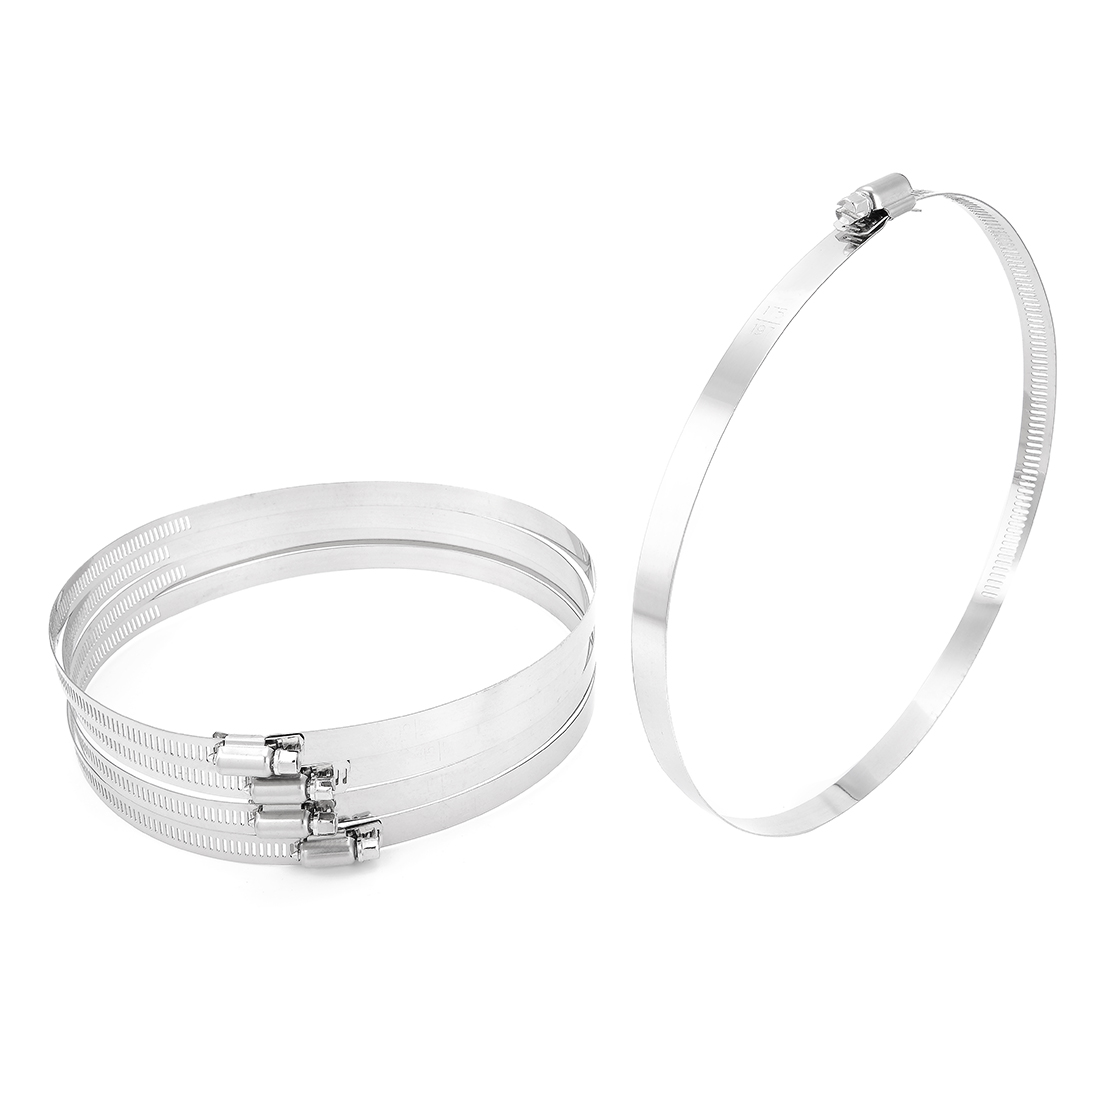 7-inch to 7.76-inch Clamping Range 201 Stainless Steel American Worm Gear Hose Clamp 5pcs